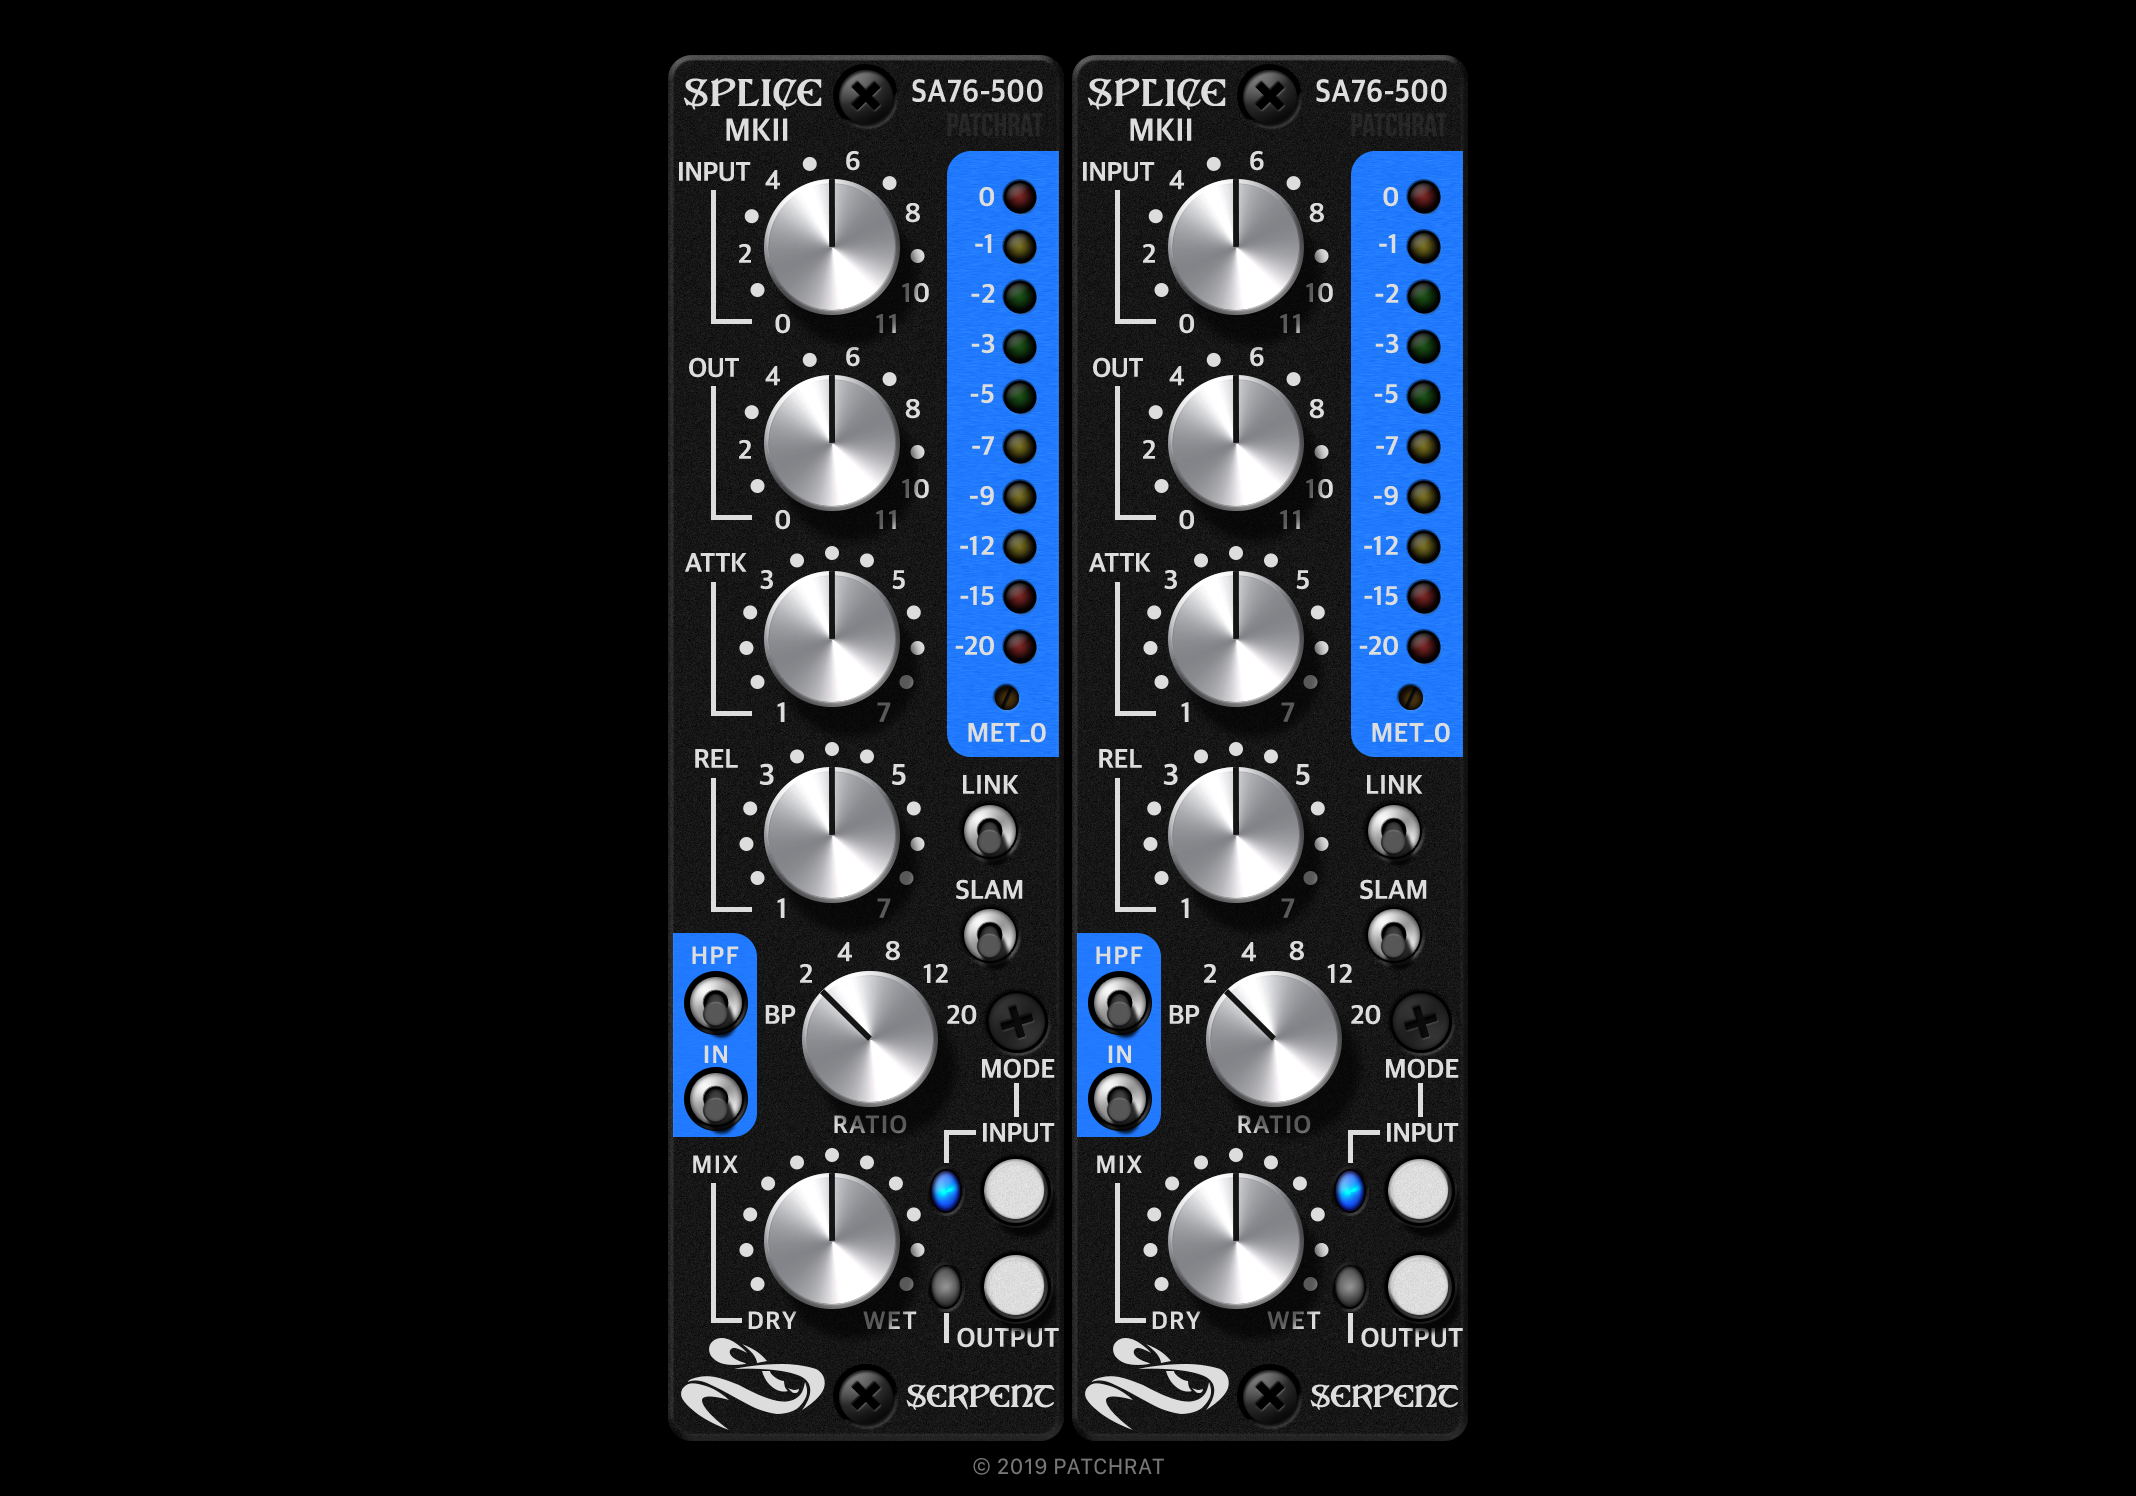 Serpent Audio Splice MKII SA76-500 recall module for the Patchrat app